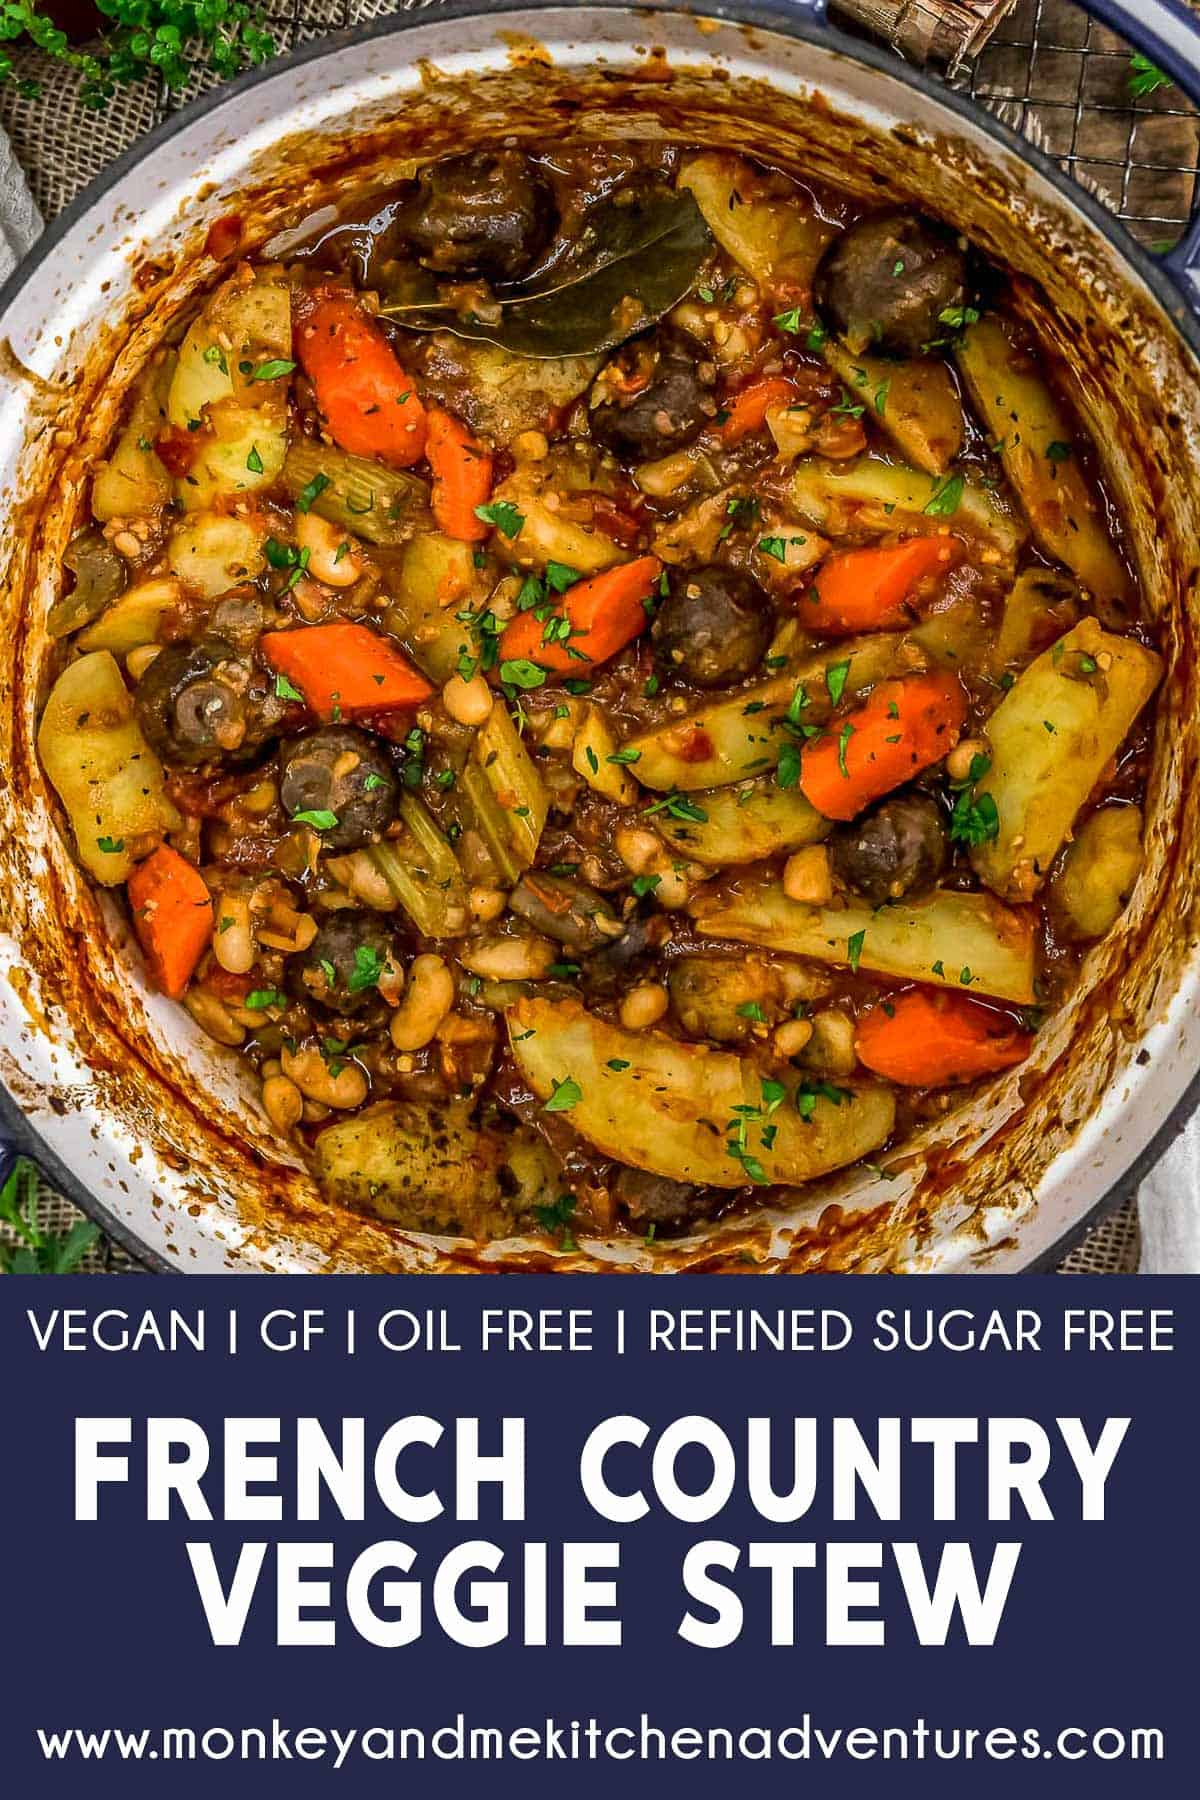 French Country Veggie Stew with text description